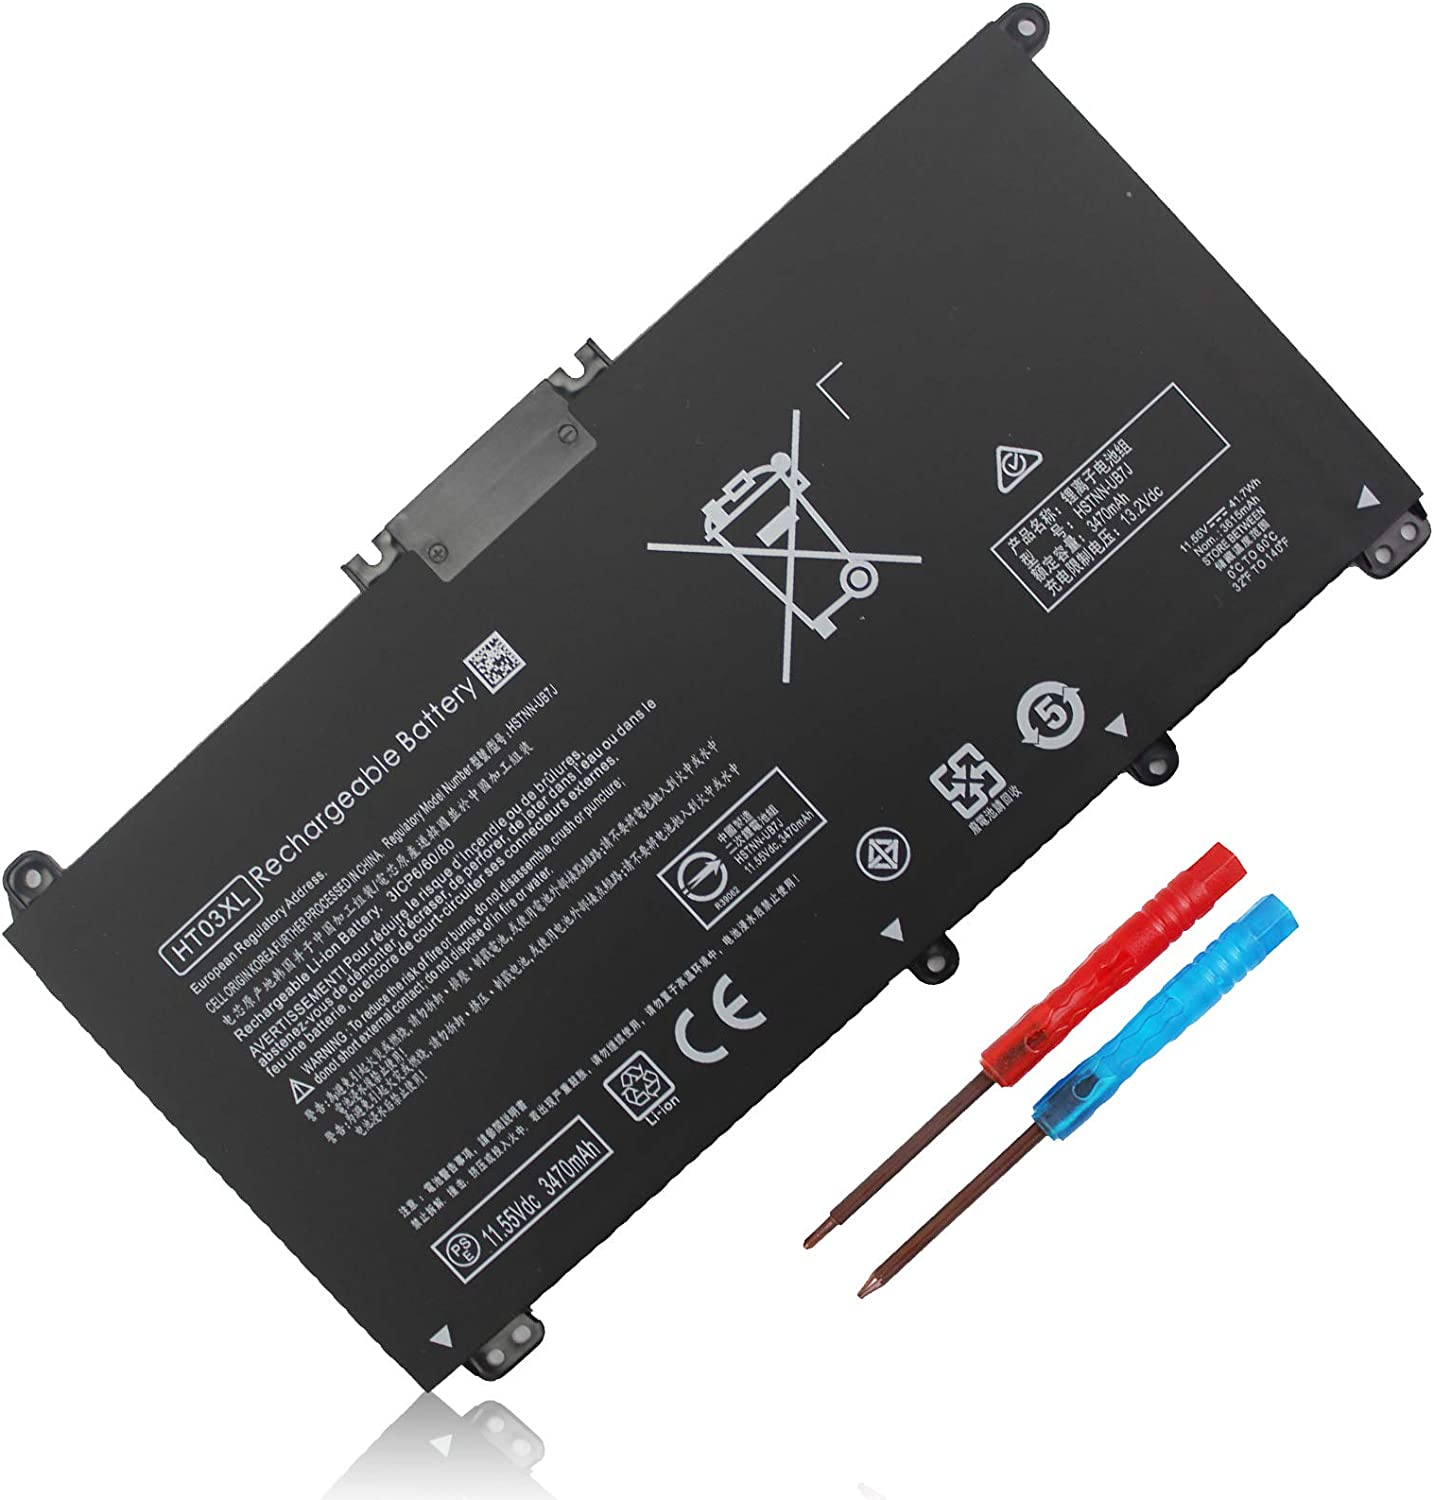 New HT03XL 35% OFF Laptop Battery for Boston Mall HP 14-CE 14-CF 14-c Pavilion 14-DF